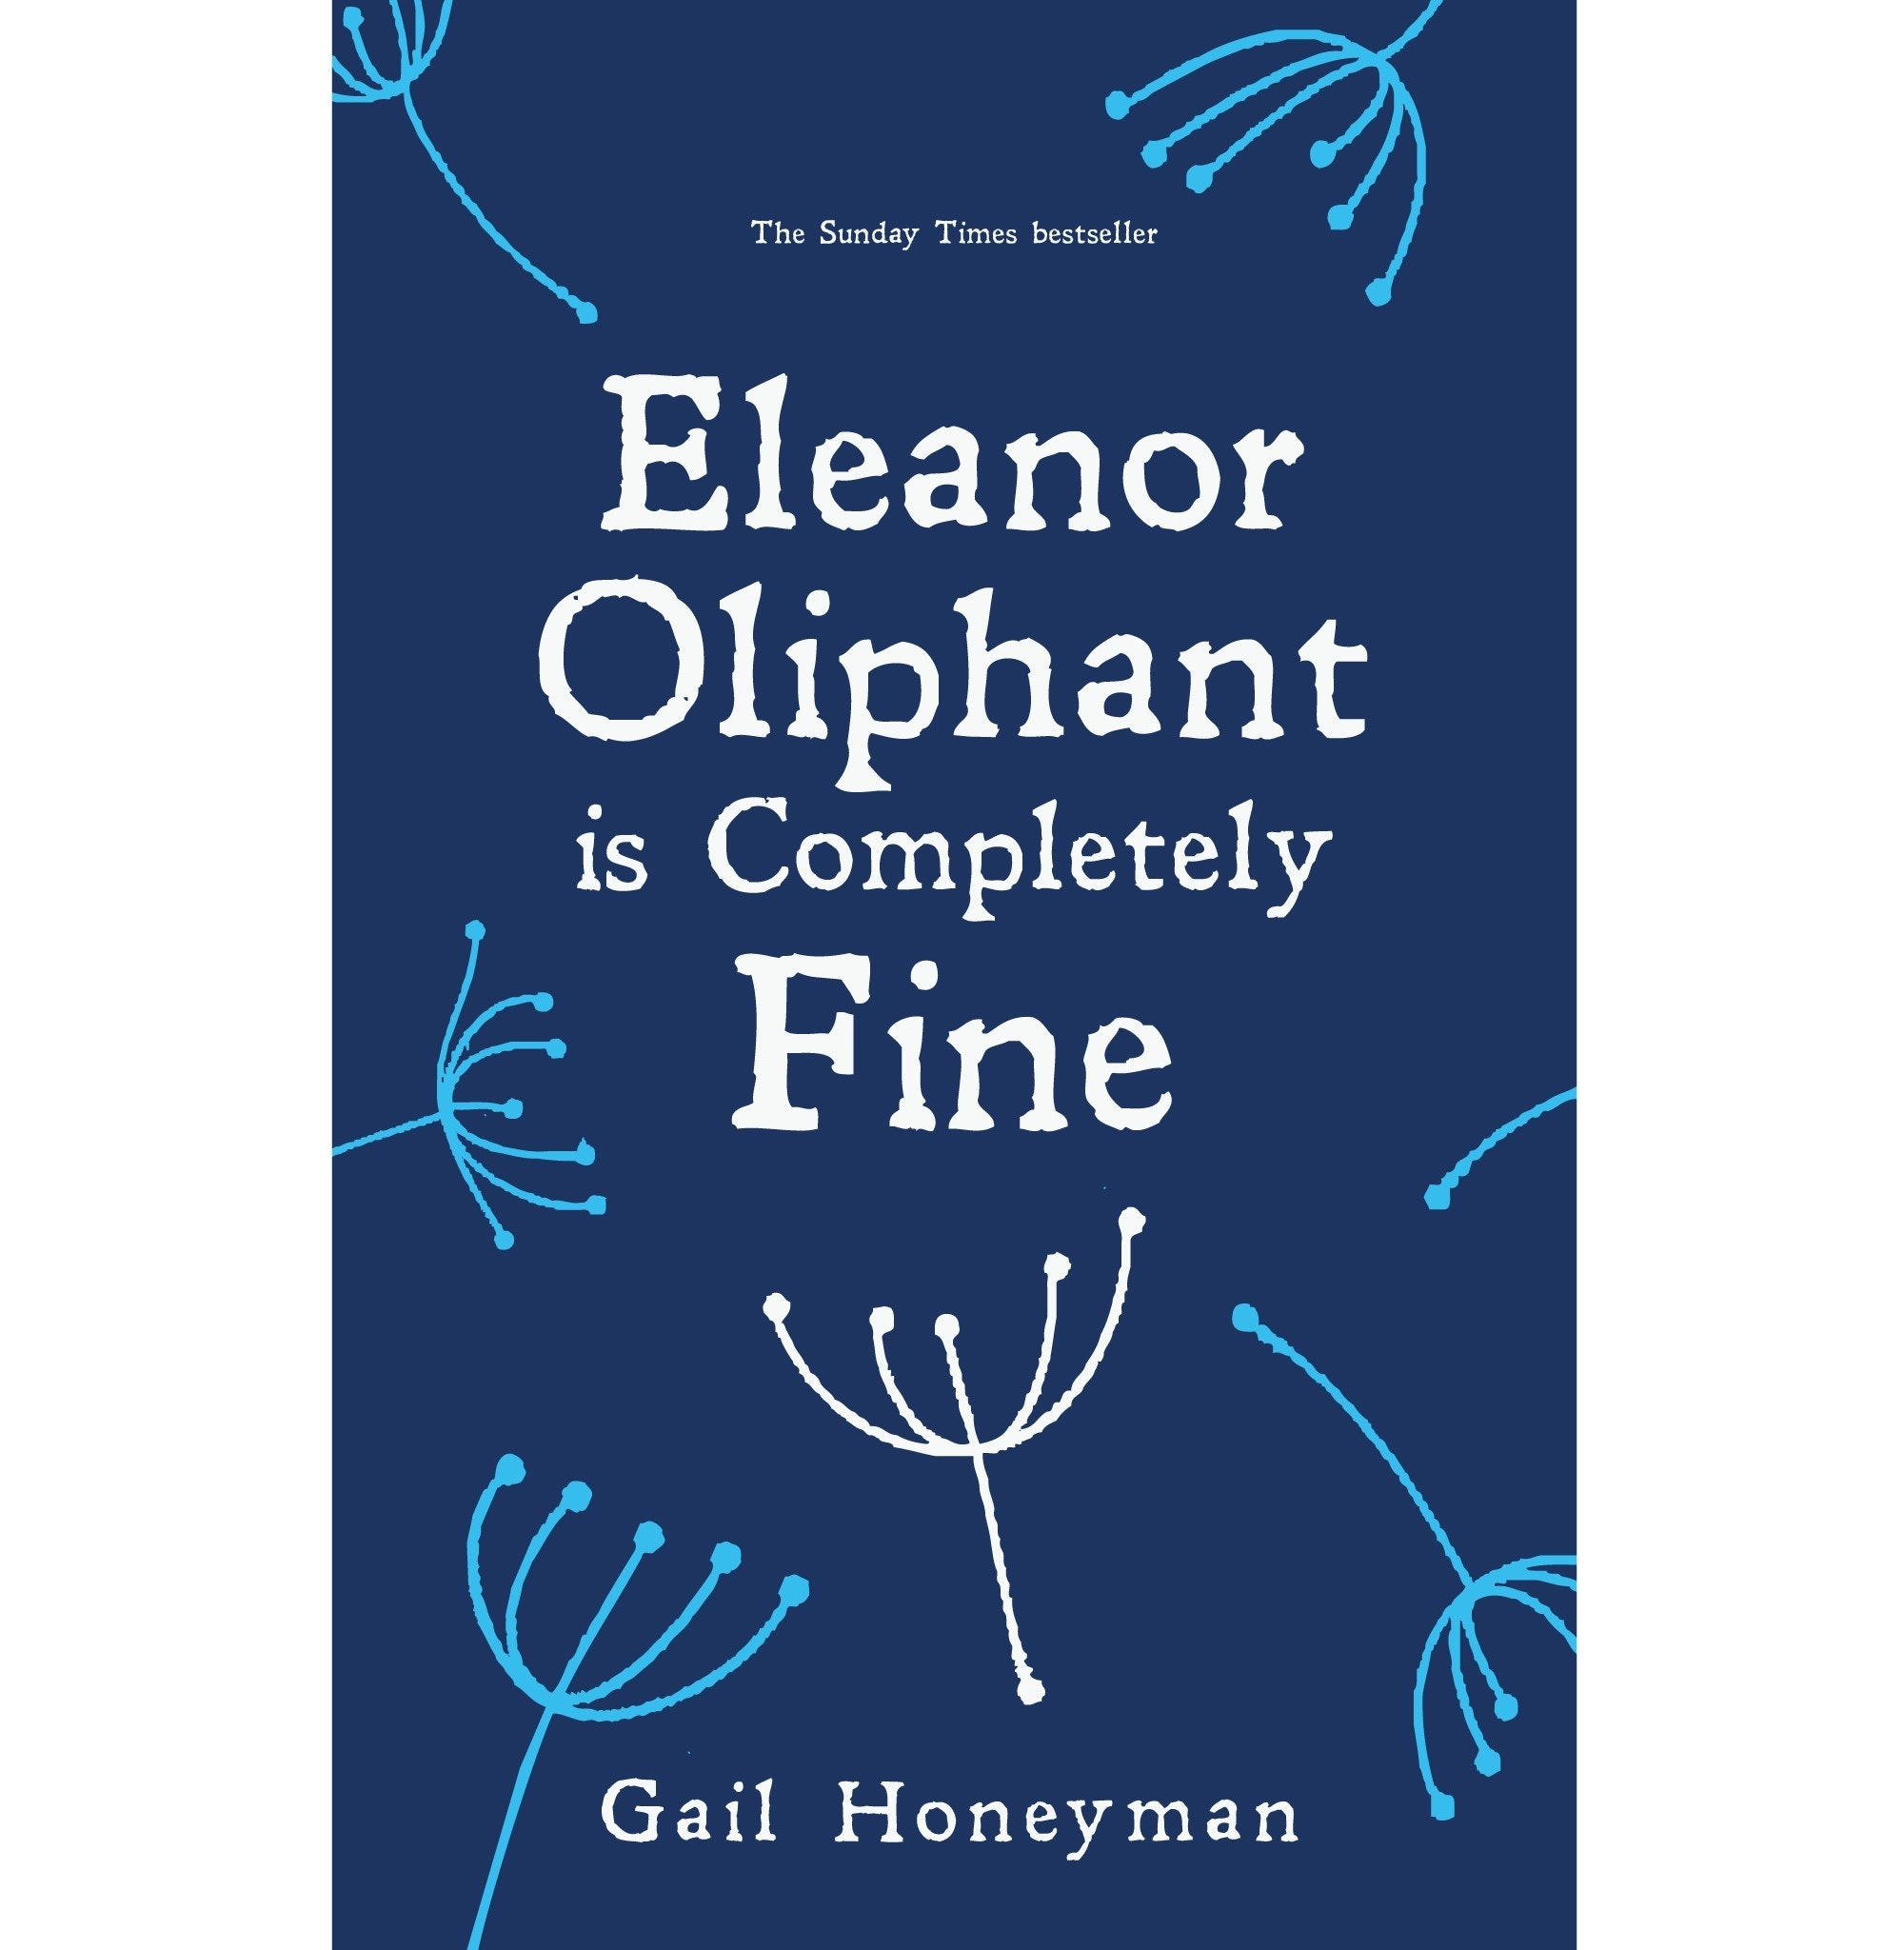 """Eleanor Oliphant is Completely Fine"" redesigned"